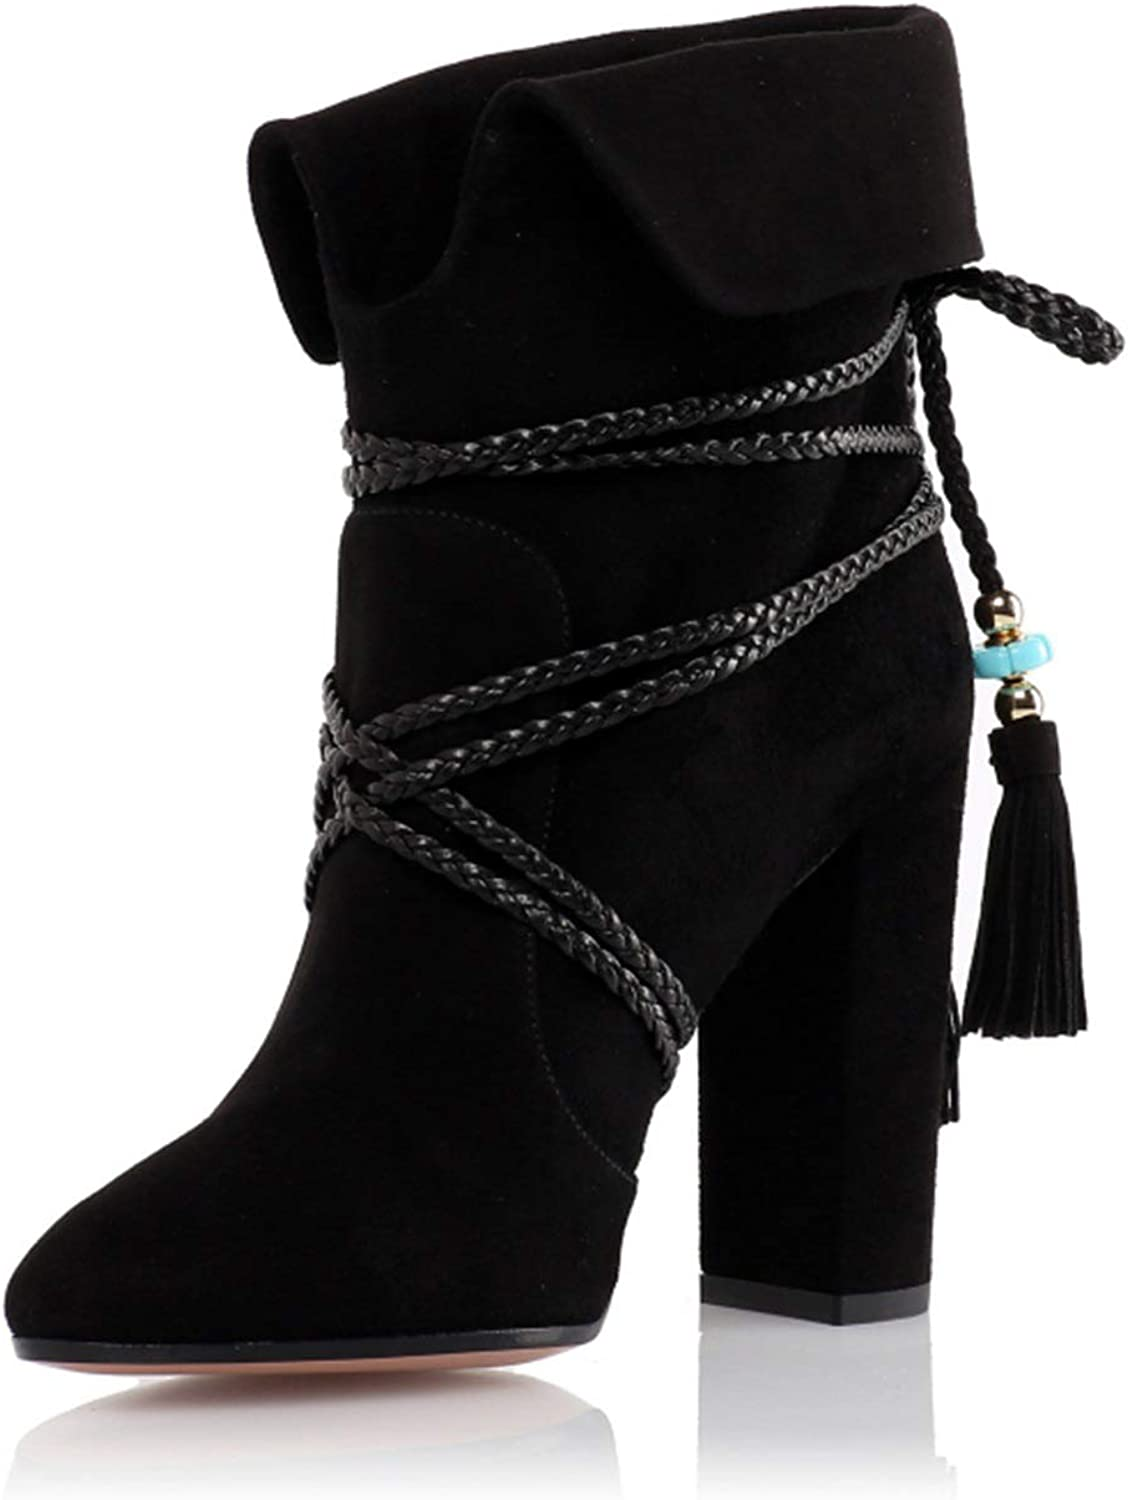 Women's Booties, Fall Winter Ankle Boots Thick Heel Suede Lace-up Fringe Boots Ladies Round Head Increase Fashion Boots Martin Boots (color   B, Size   44)